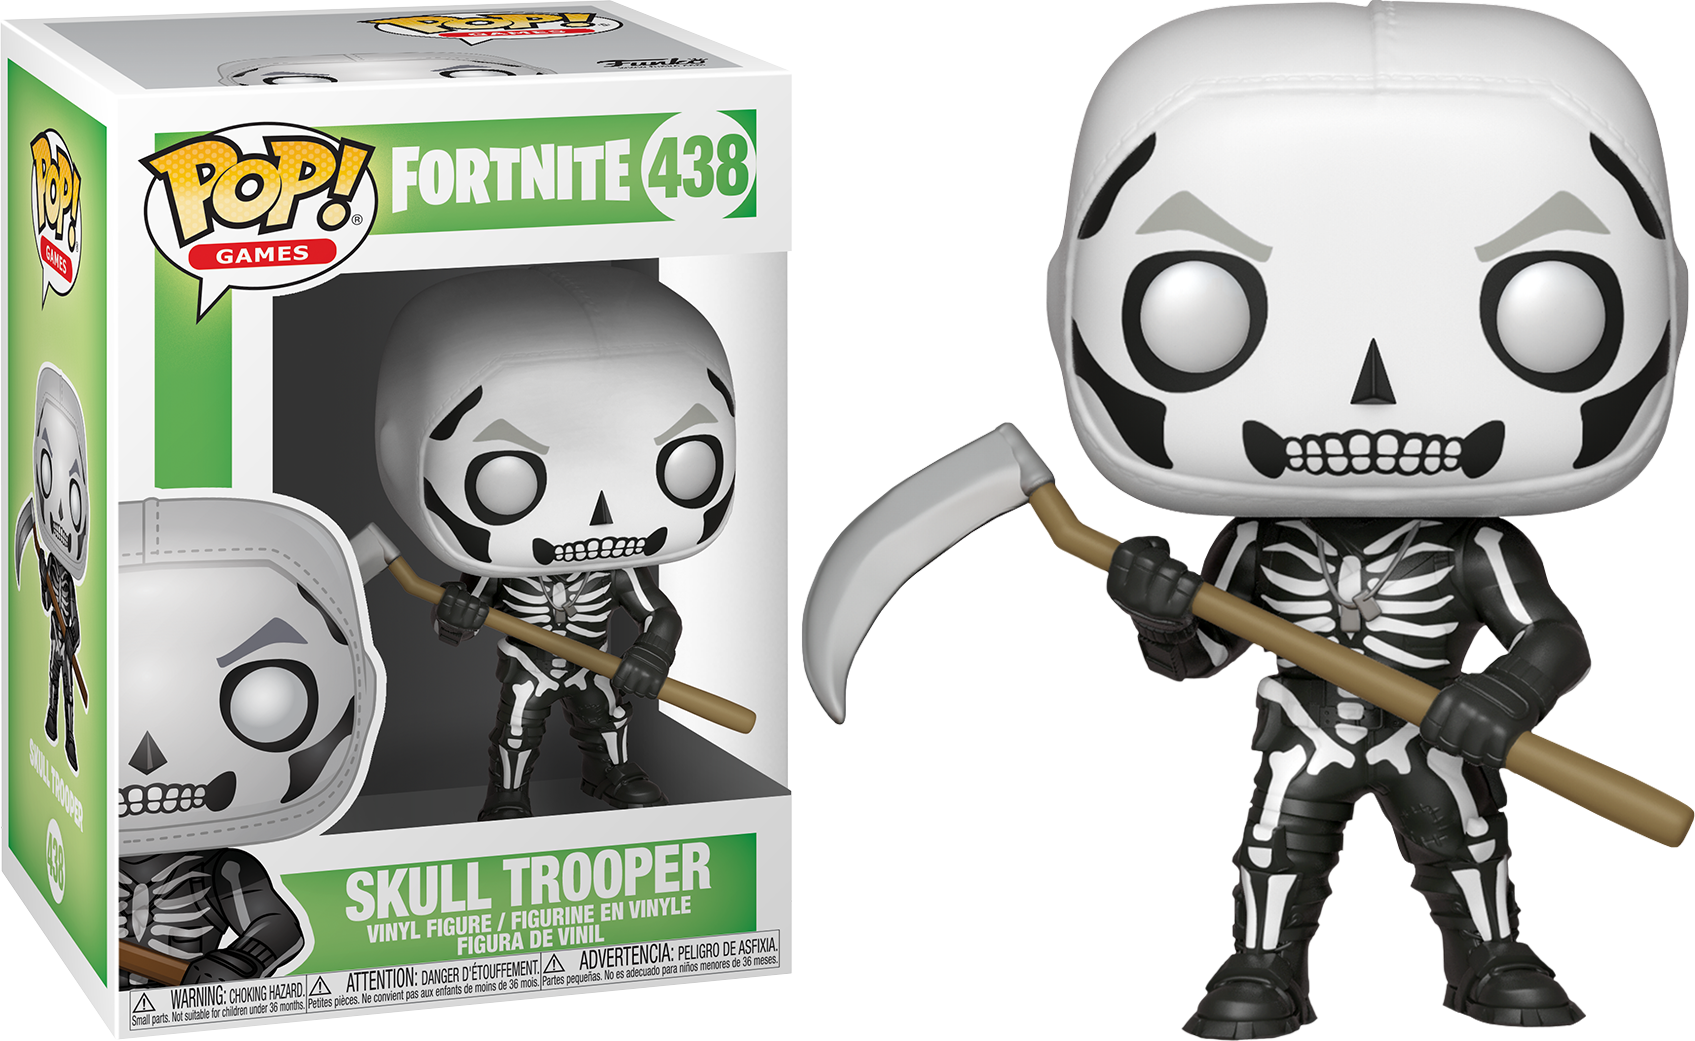 Skull trooper clipart fan art. Fortnite battle royale with